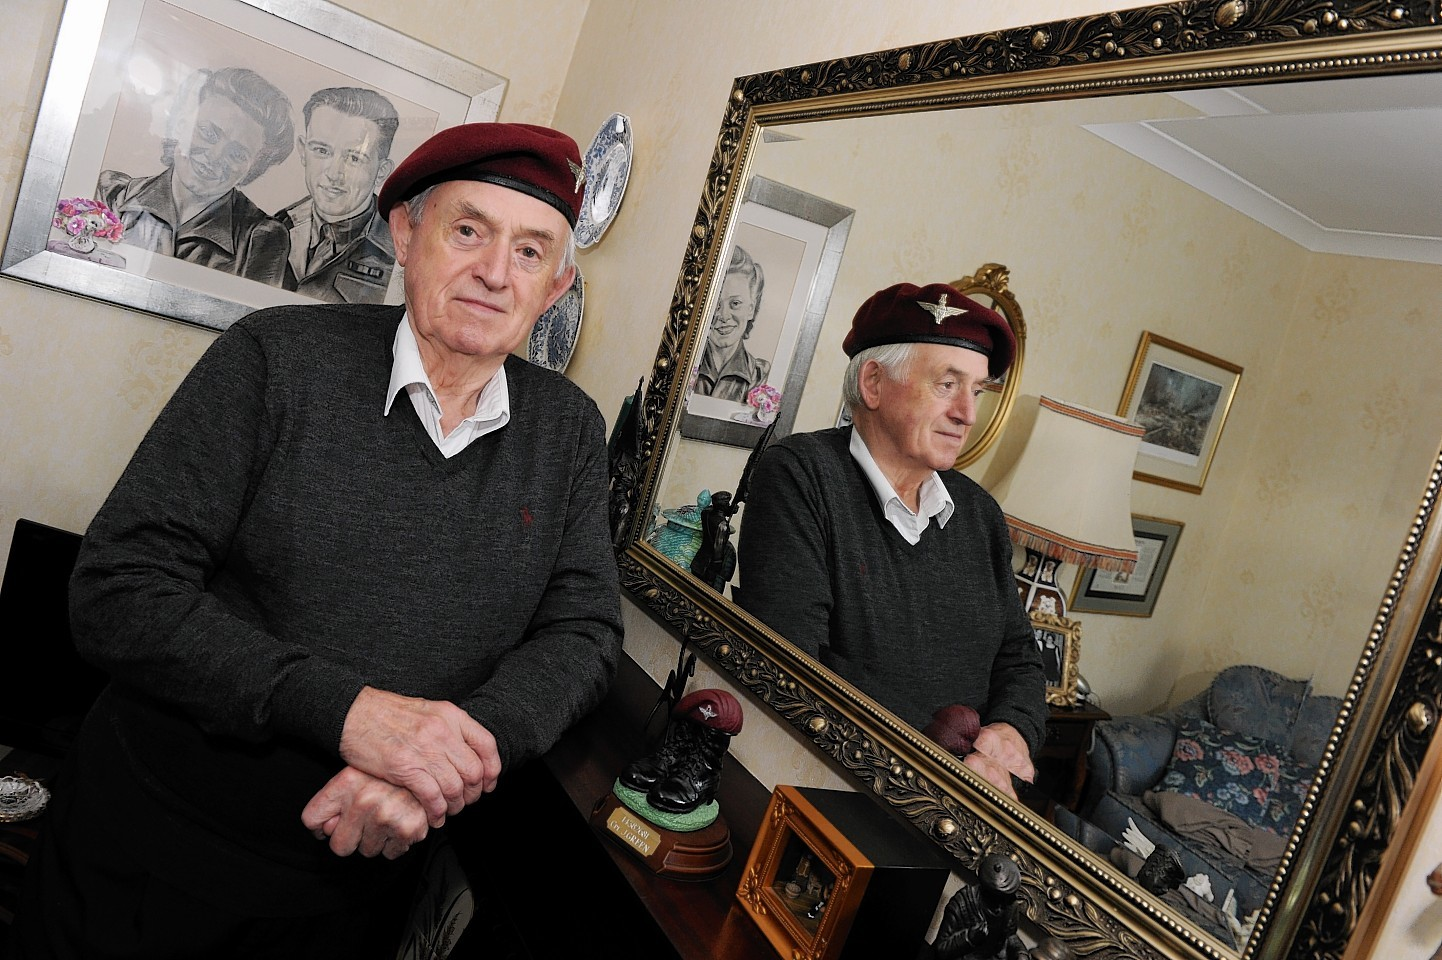 World War II veteran, Jim Green, at his home in Bridge of Don. Credit: Colin Rennie.